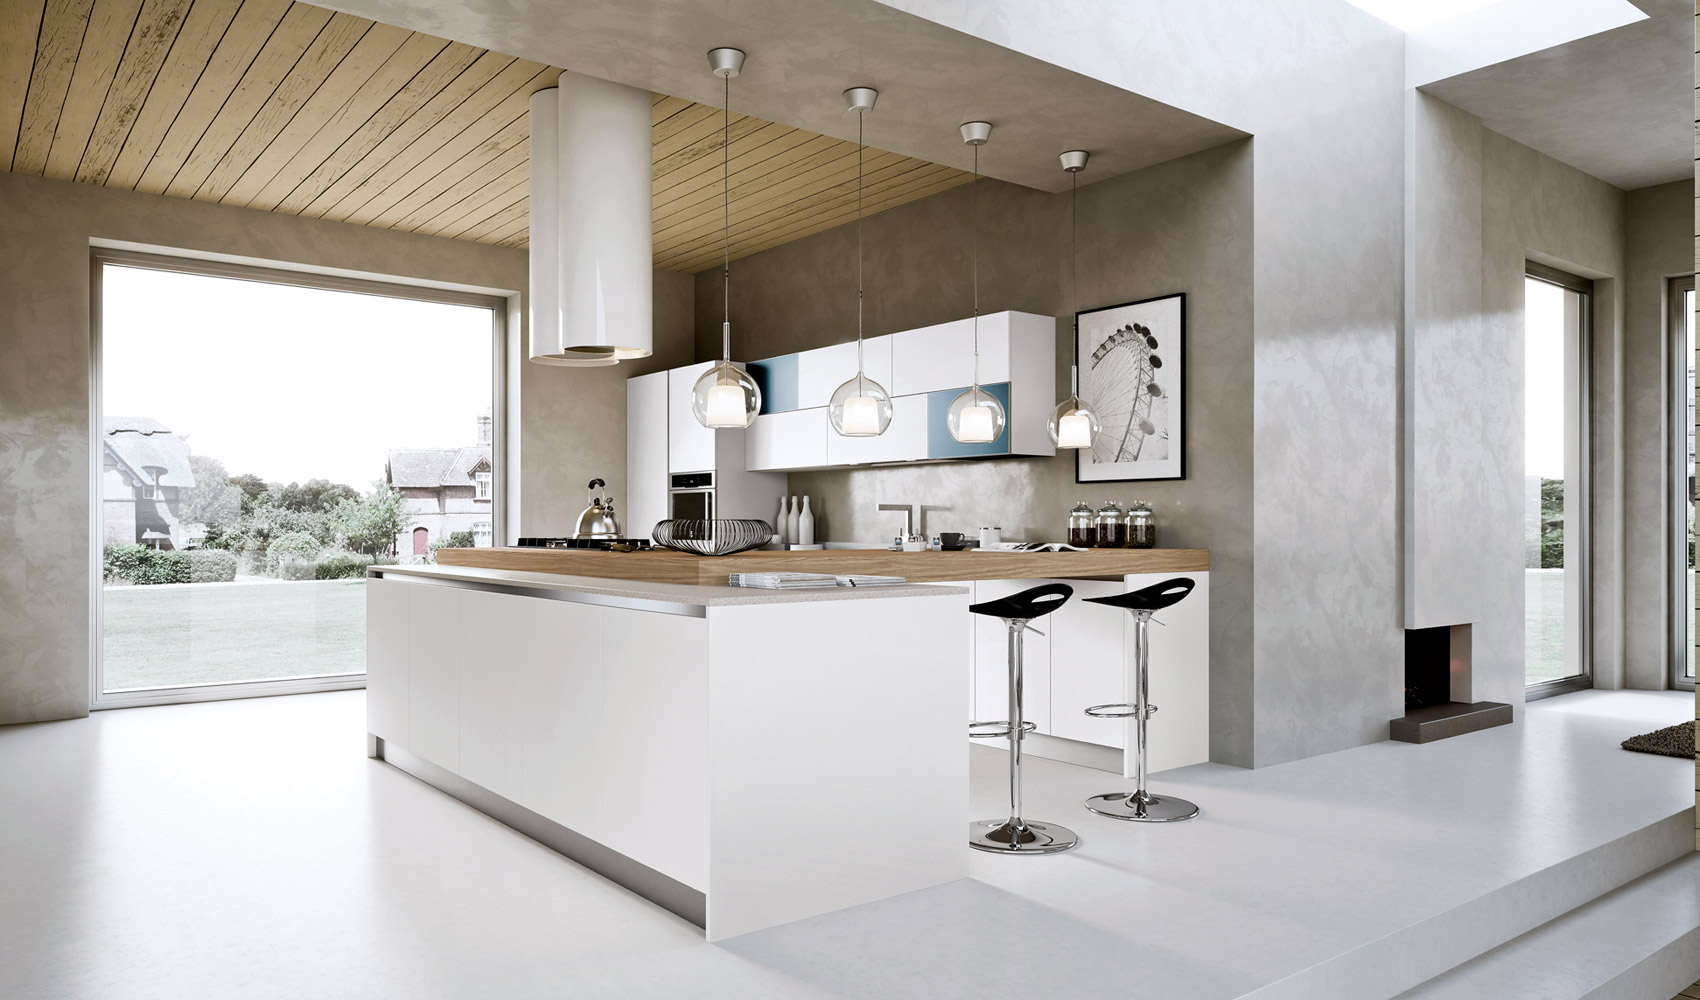 White kitchen interior design ideas - Kitchen interior designing ...